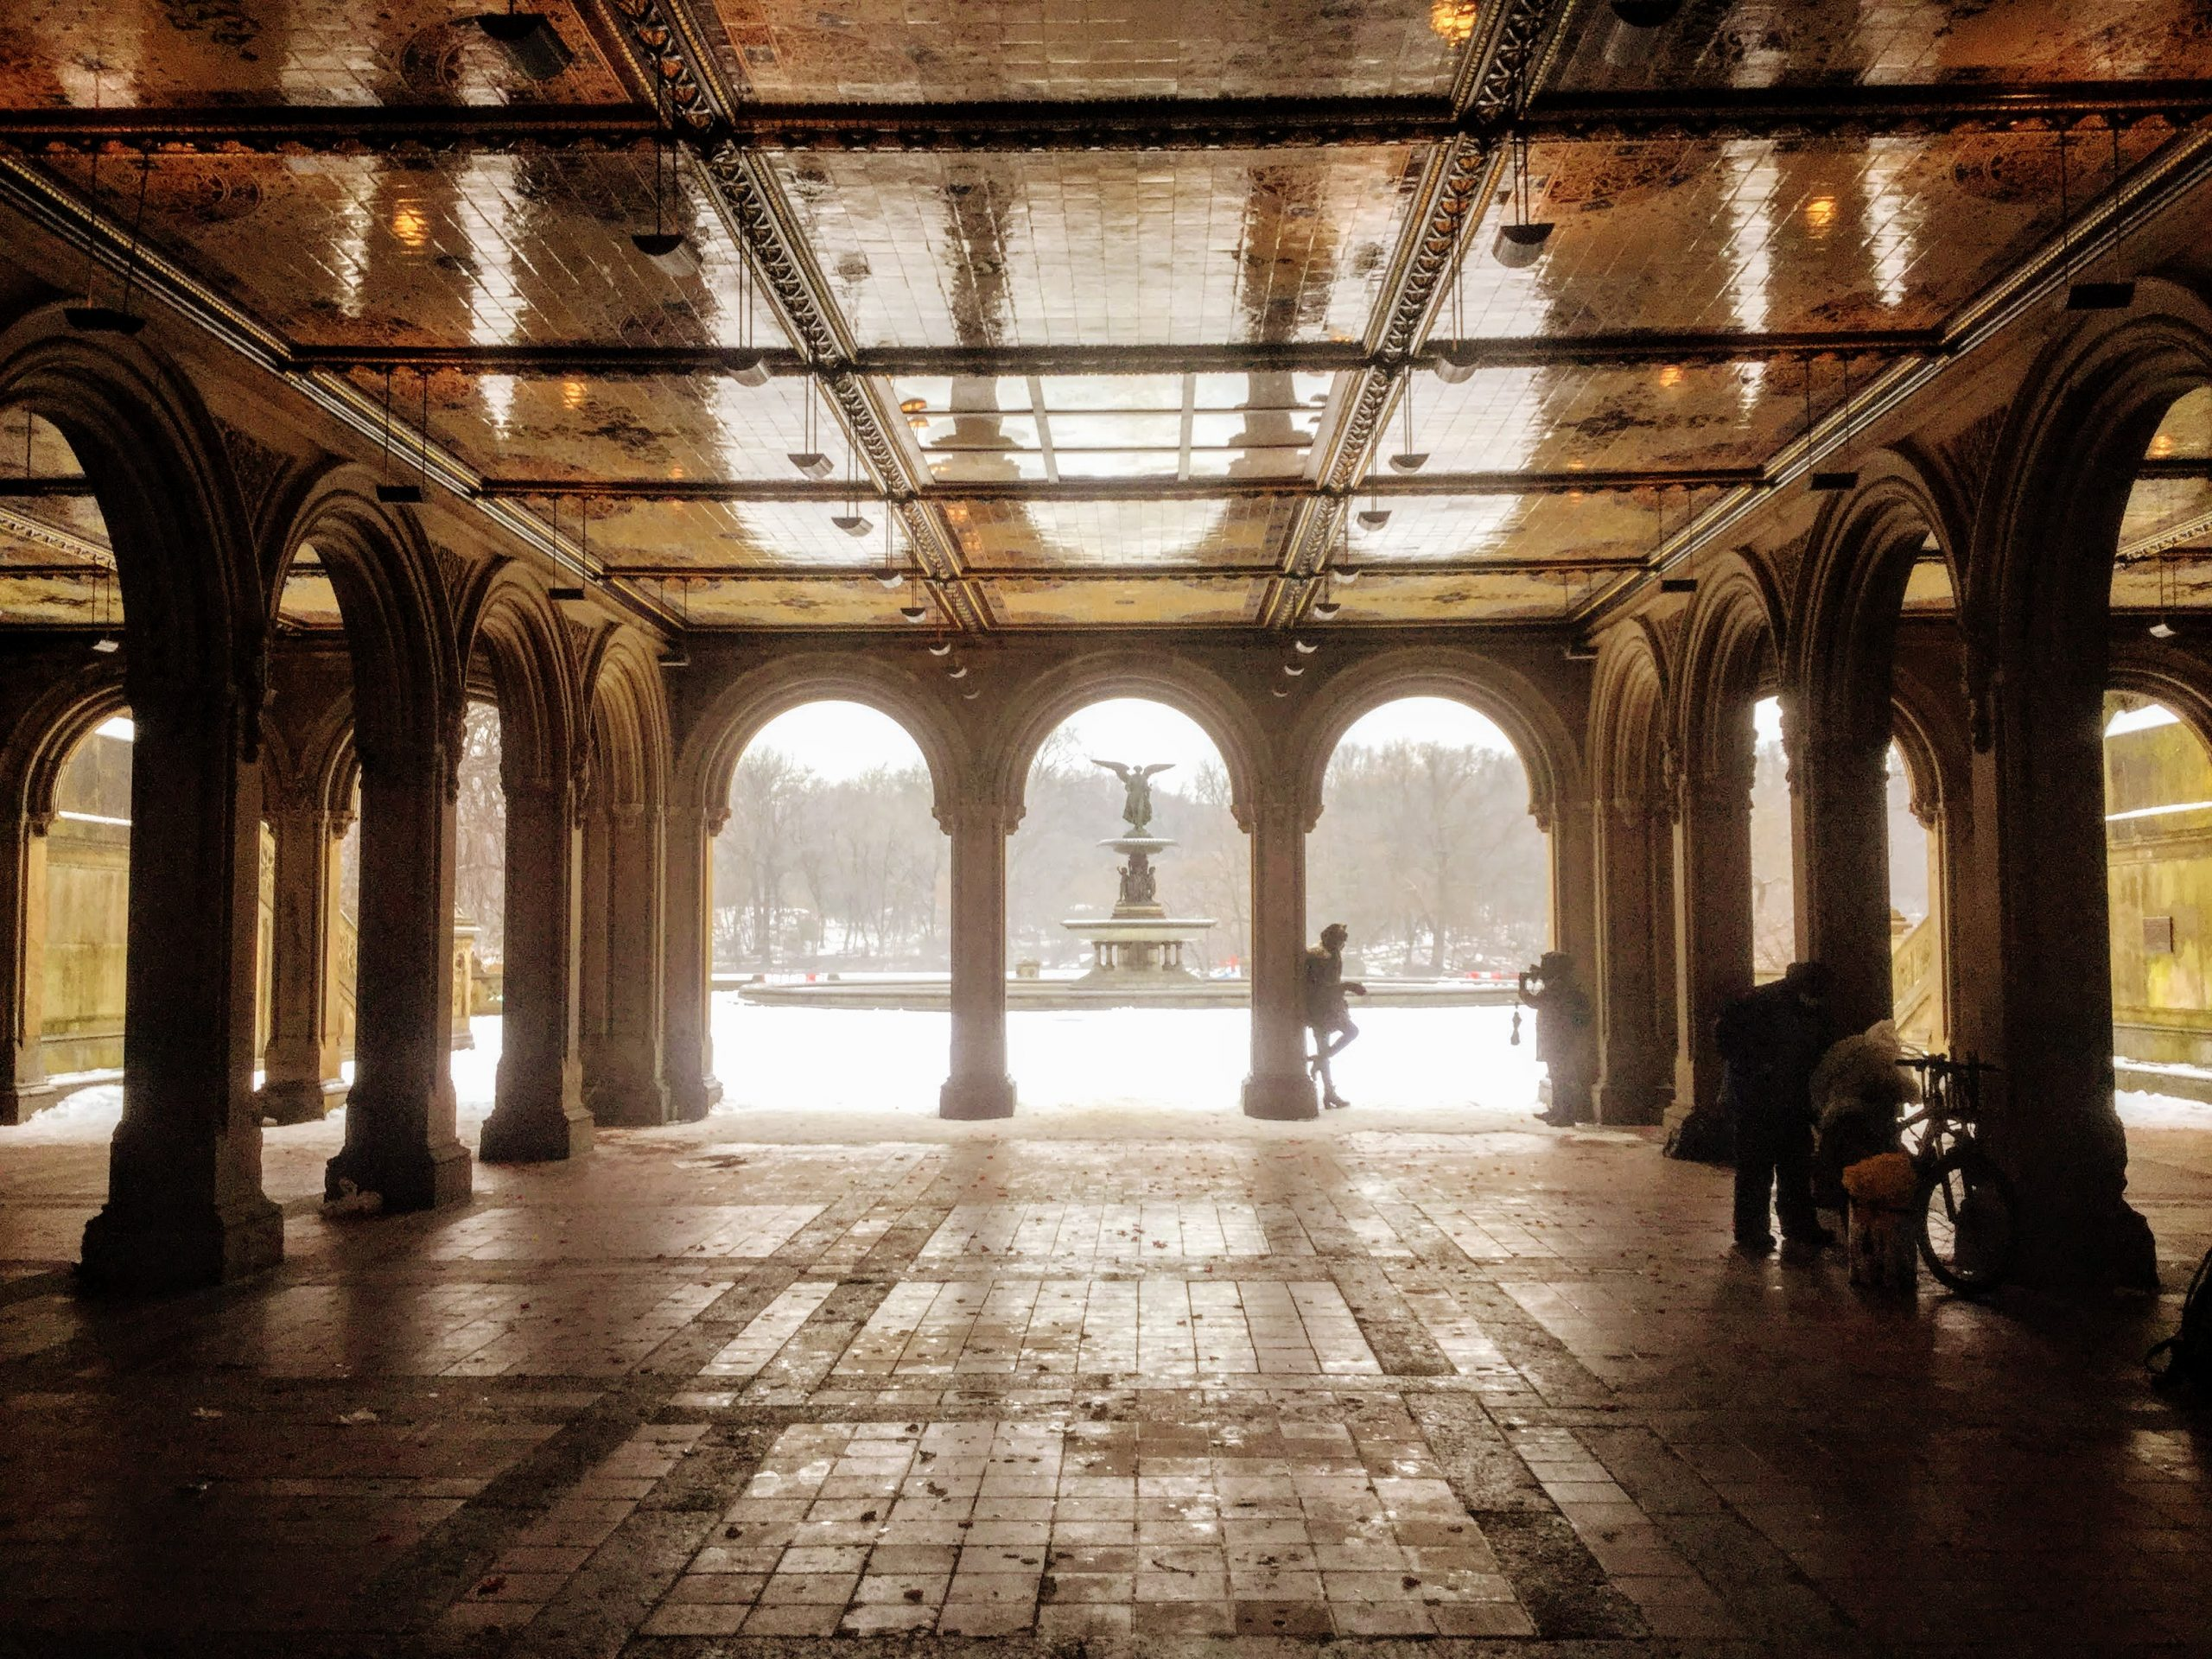 Bethesda Terrace and Fountain in the snow